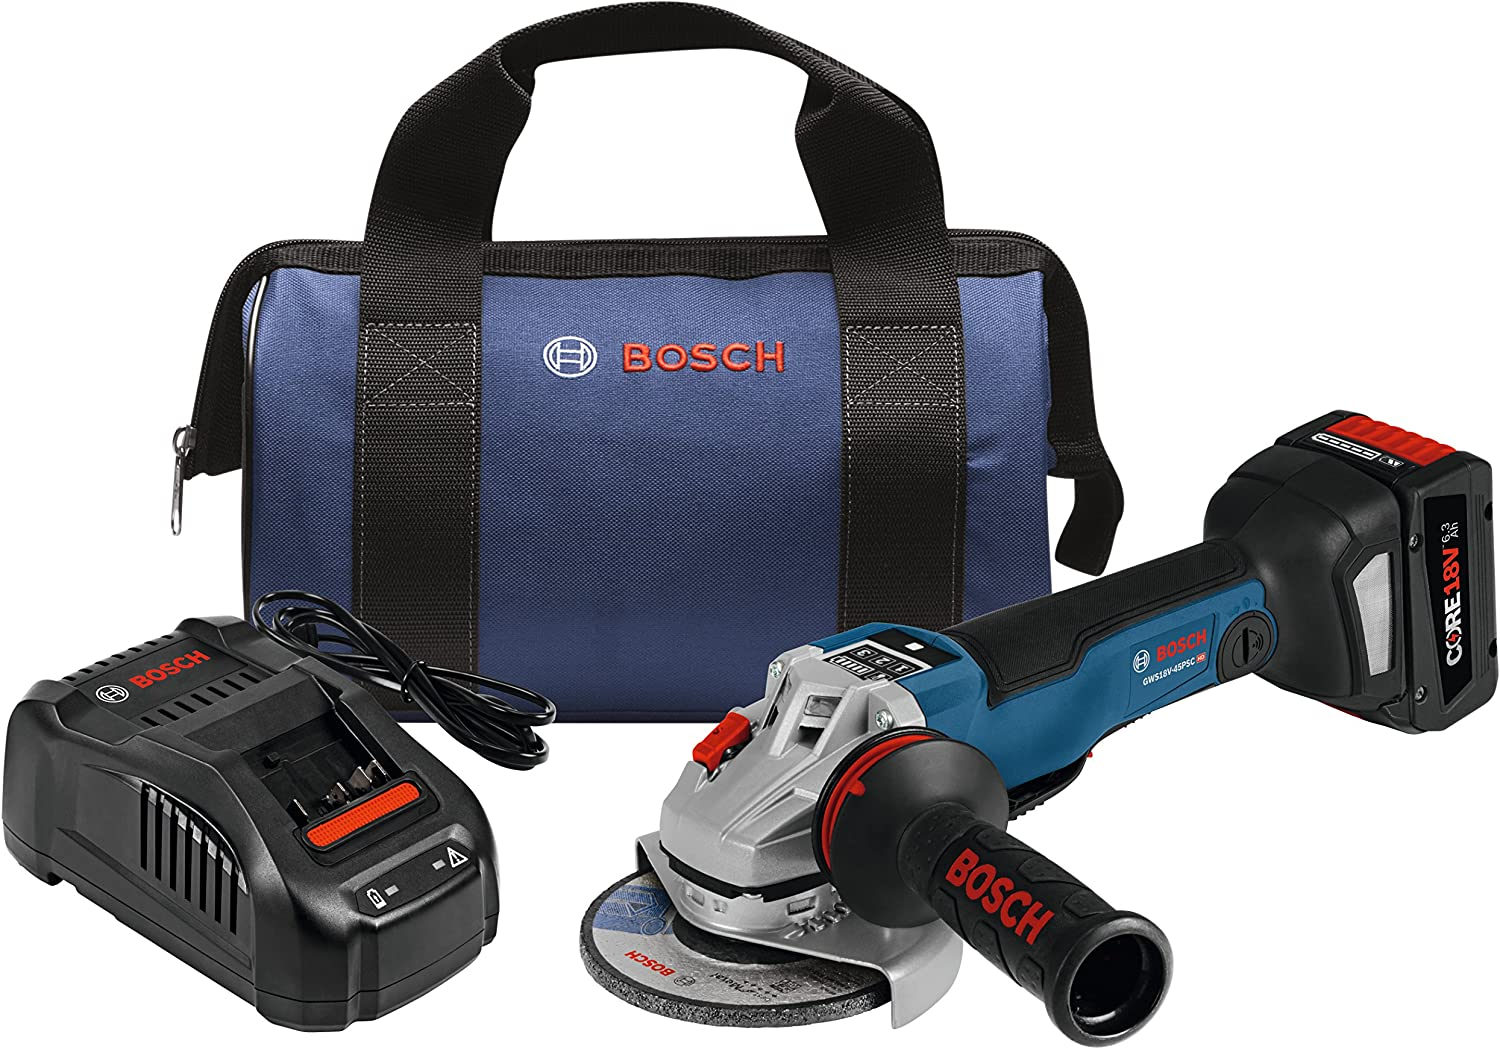 Bosch GWS18V-45PSCB14 18V EC Brushless Connected 4-1/2 In. Angle Grinder Kit with No Lock-On Paddle Switch and CORE18V Battery